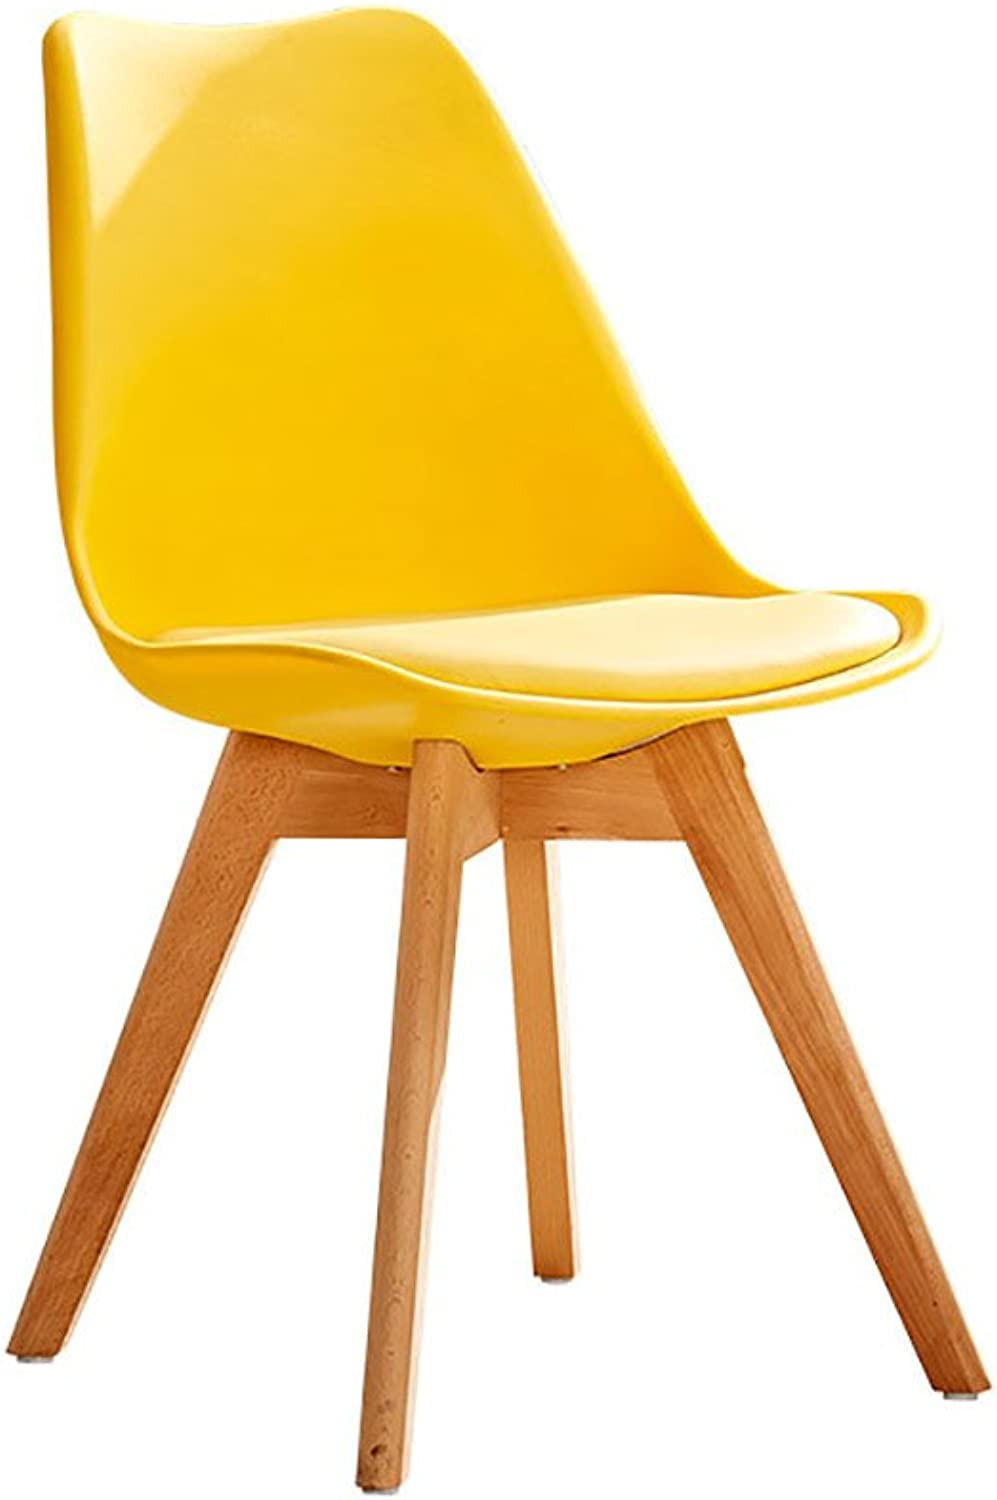 Teng Peng Chair - Simple Personality Nordic Leather seat, Living Room, Bedroom, Study Room Waterproof Anti-fouling Chair Household Products (color   E)